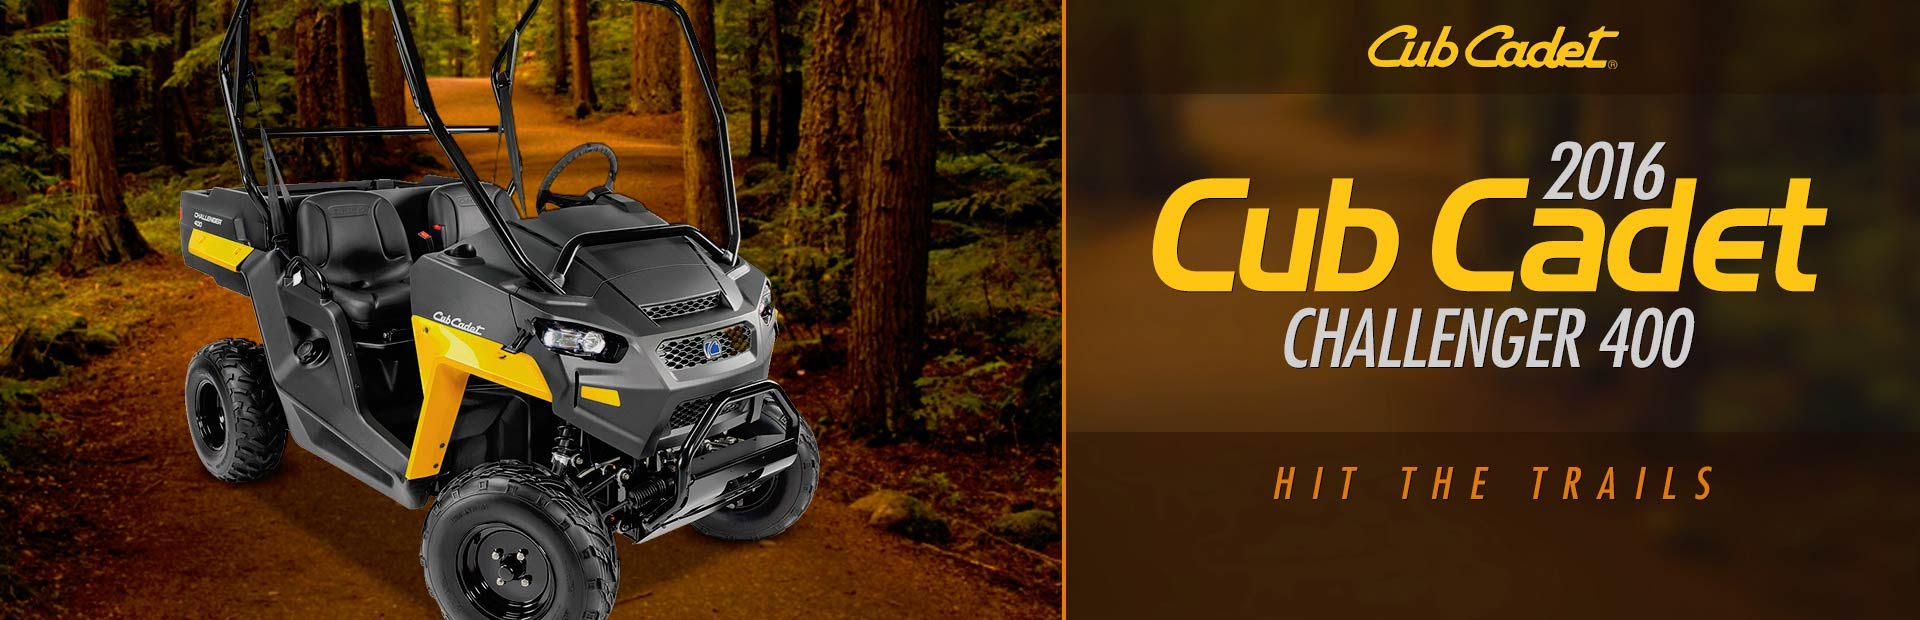 2016 Cub Cadet Challenger 400: Click here to view the model.